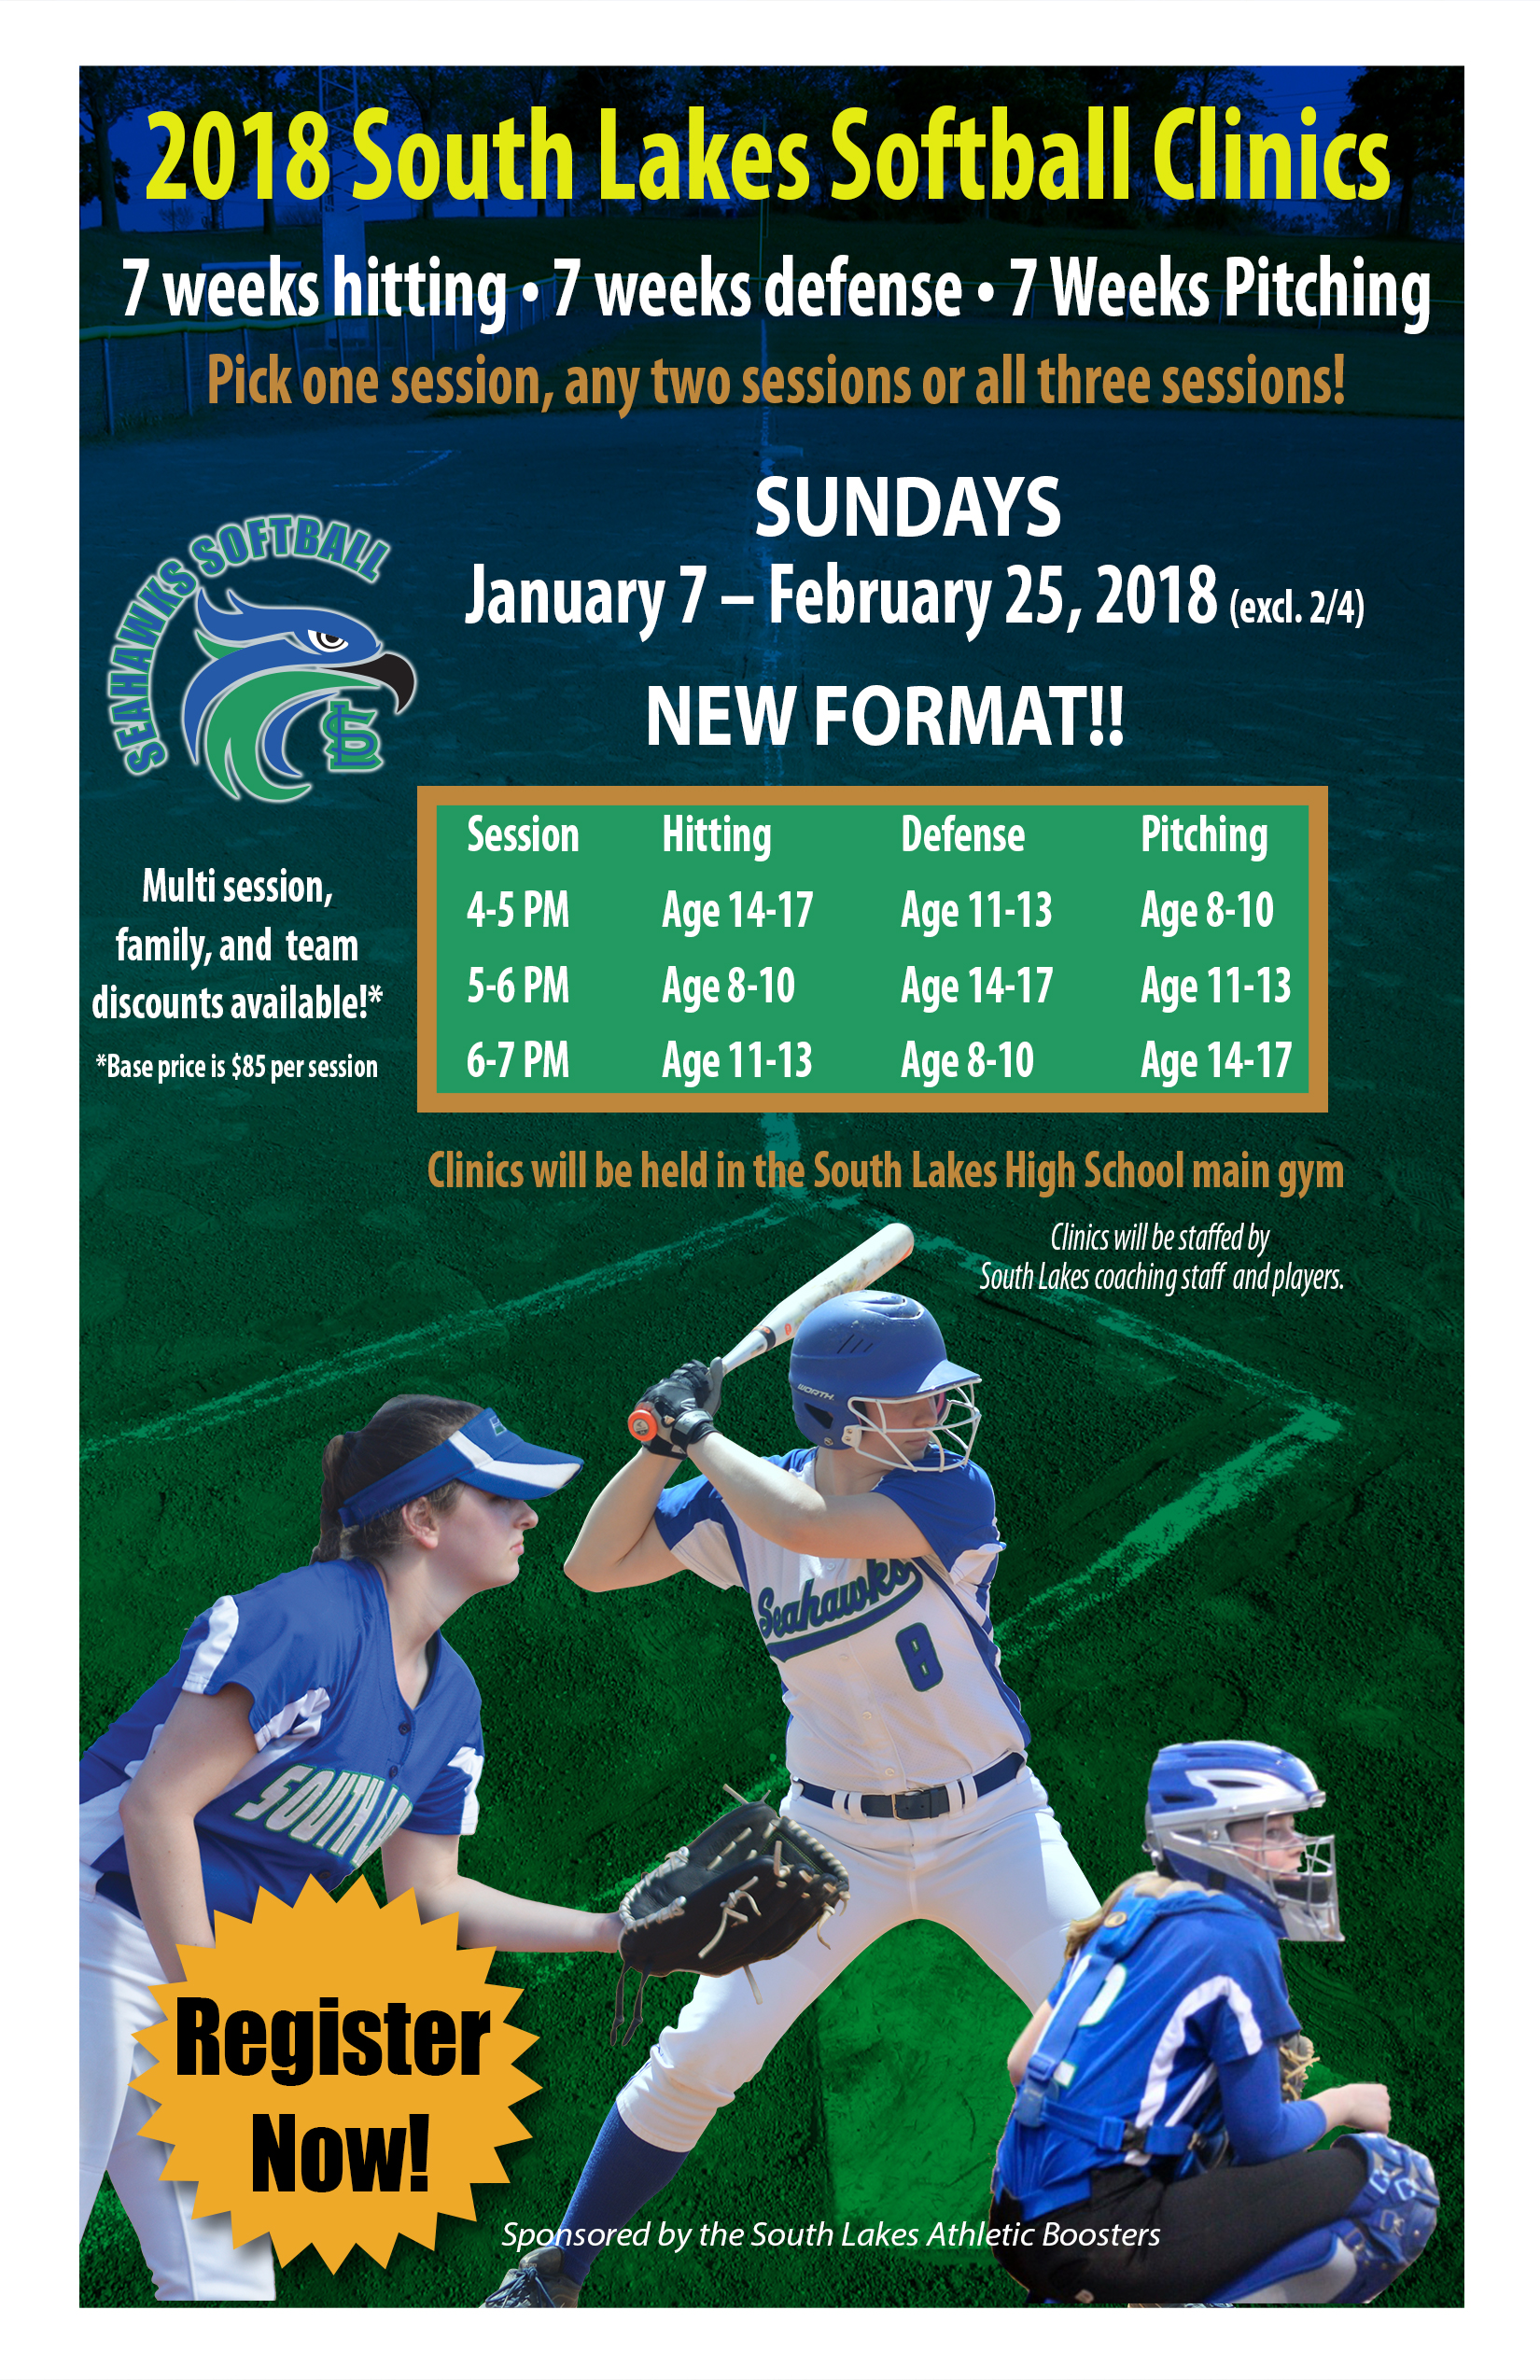 Softball Clinics Sunday Jan 7 through February 25